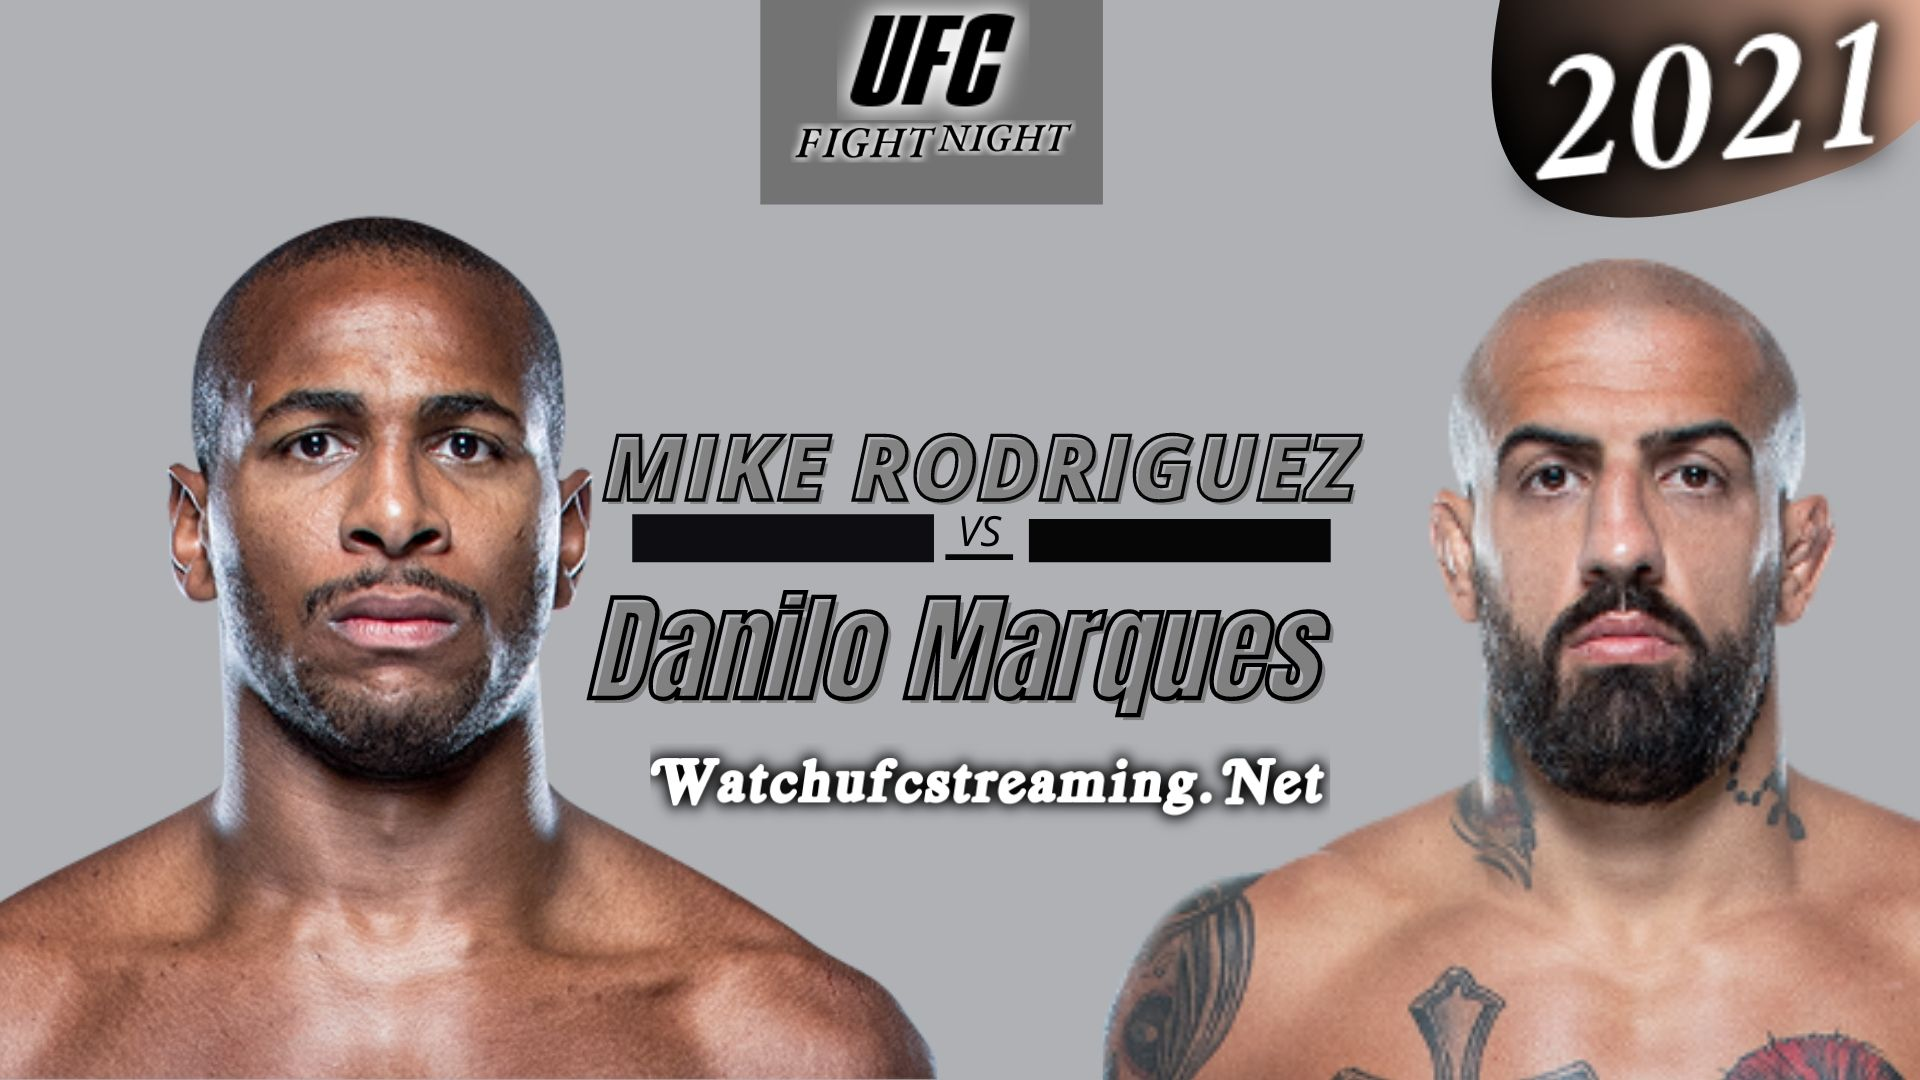 UFC - Mike Rodriguez Vs Danilo Marques Highlights 2021